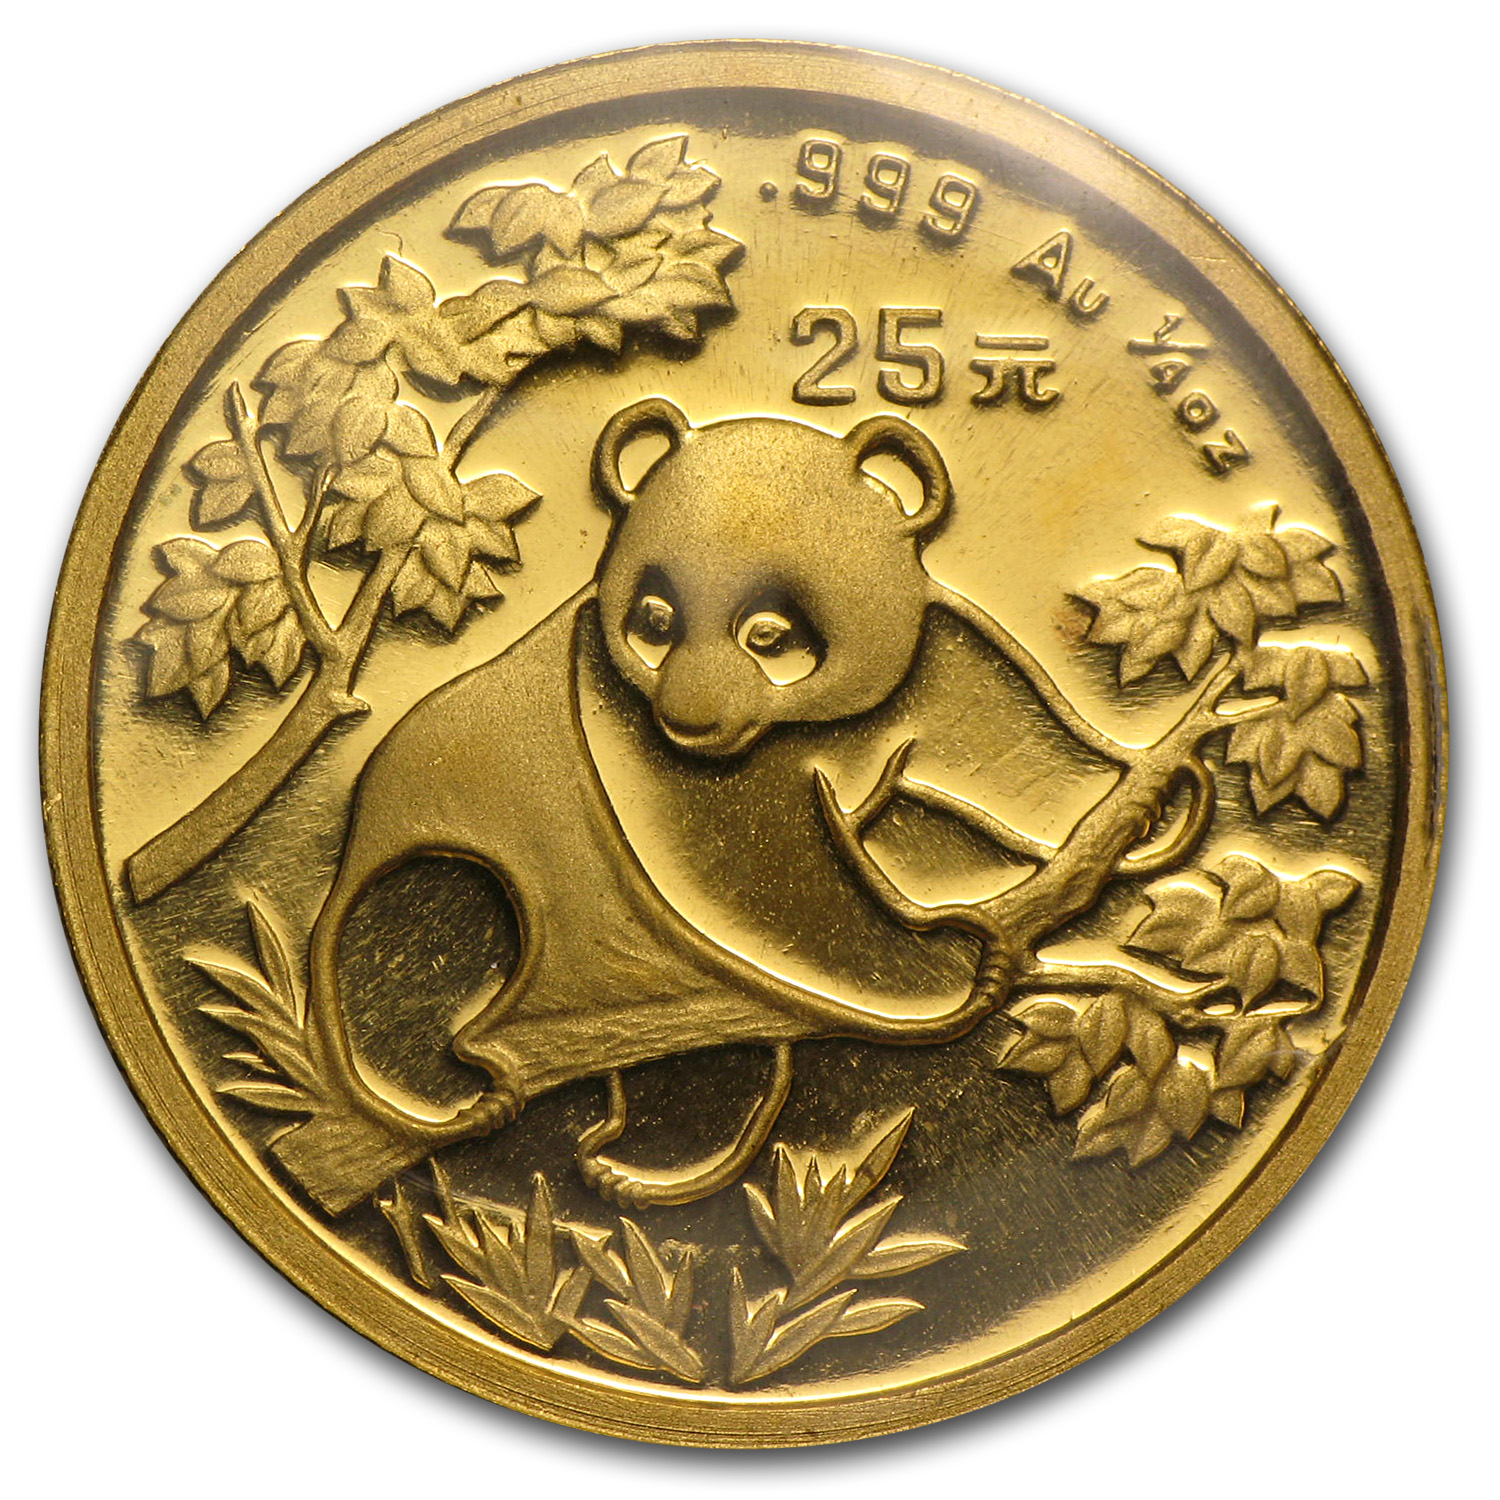 1992 China 1/4 oz Gold Panda Large Date BU (Sealed)